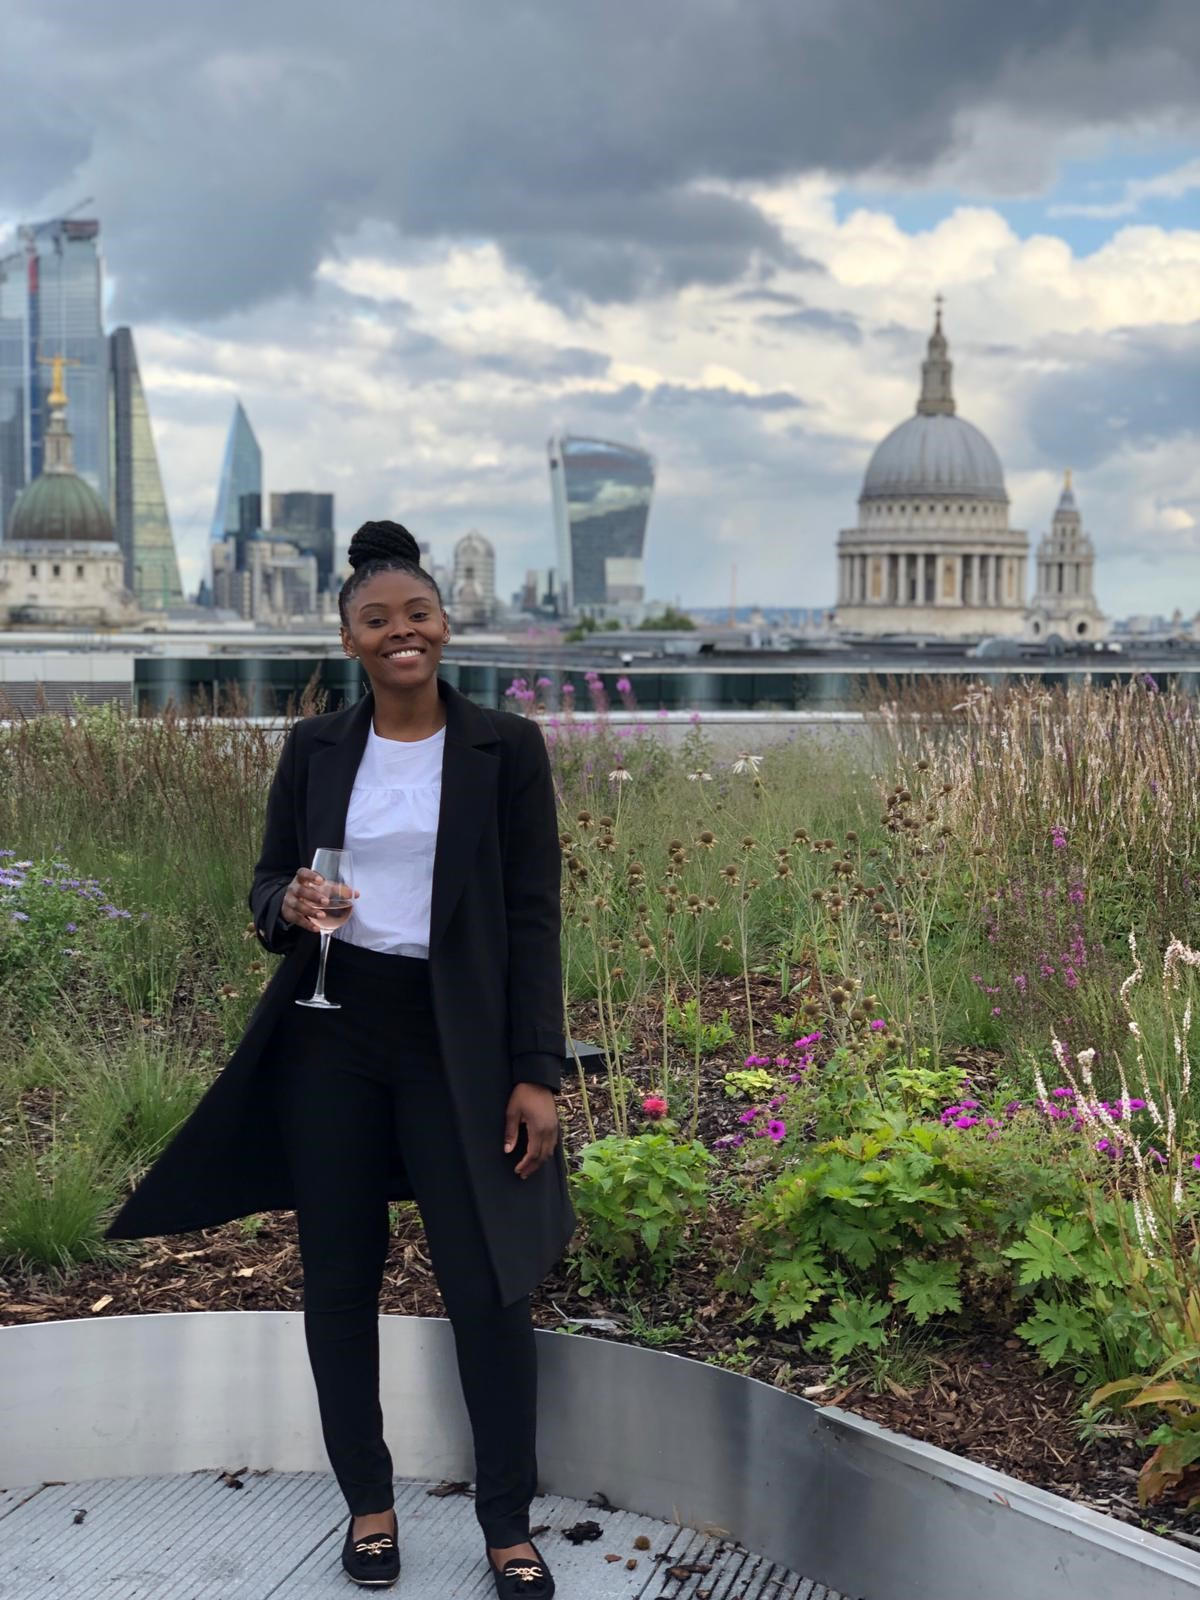 Girl with a champagne glass standing outside behind London skyline